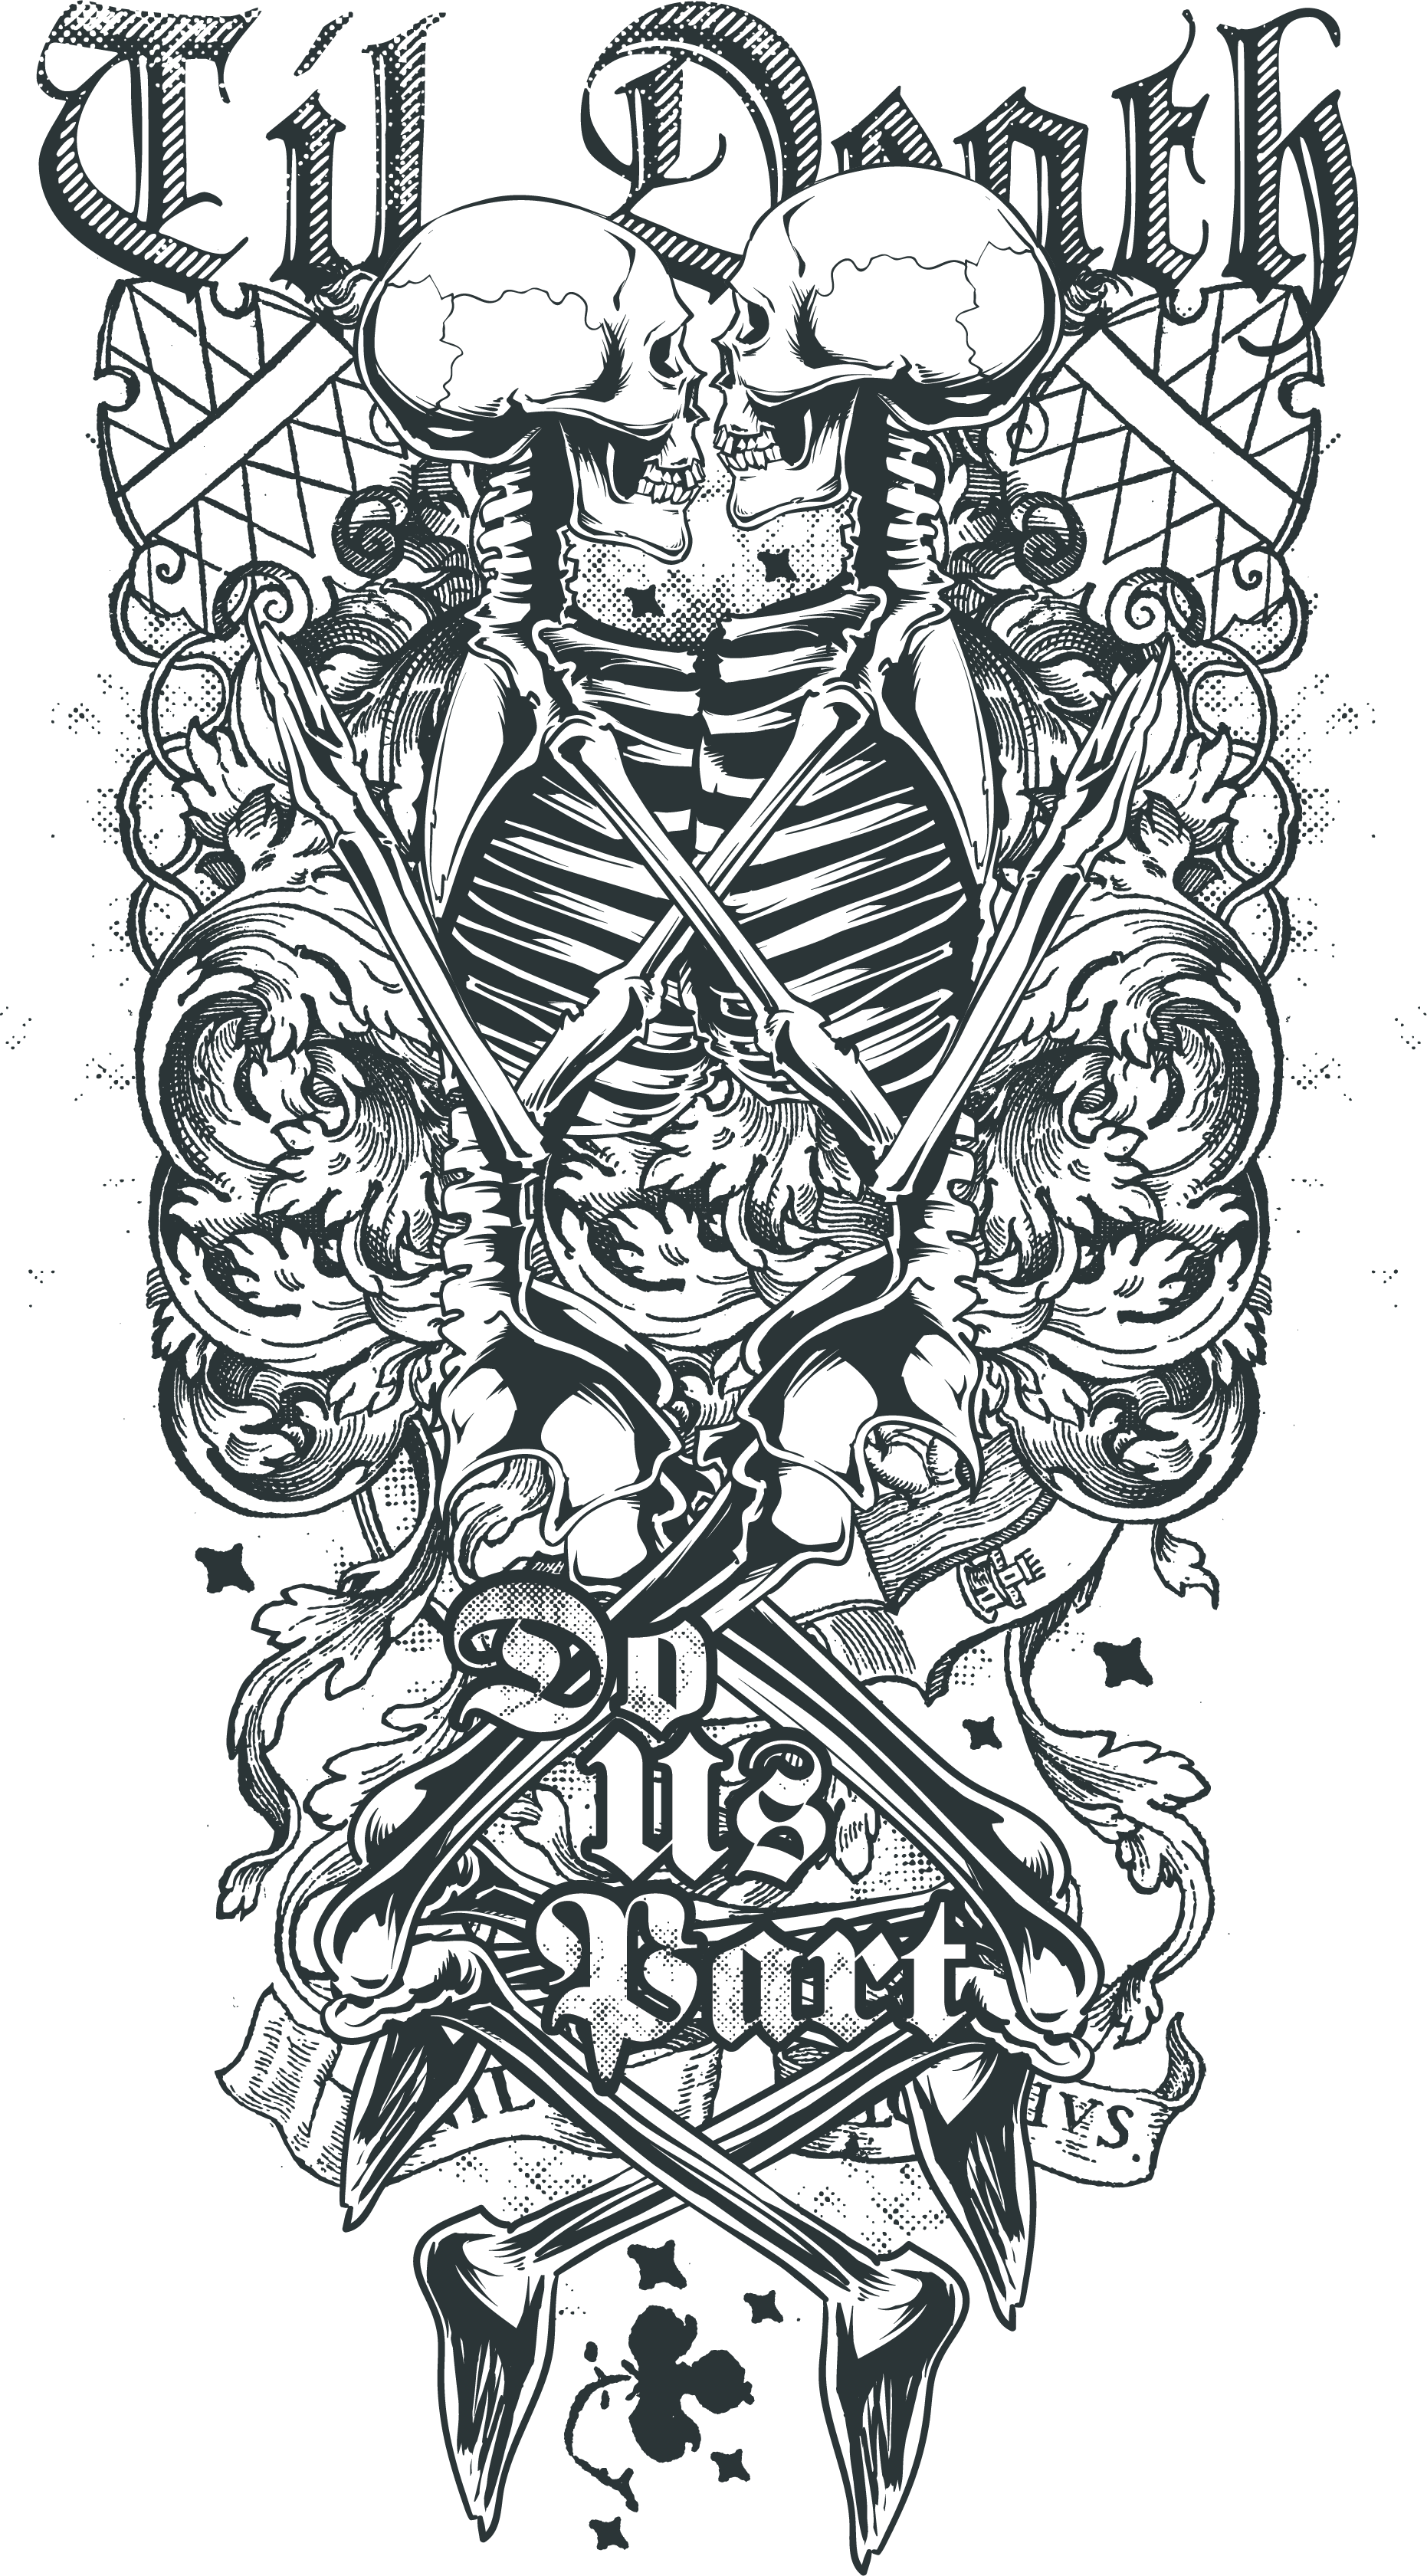 Tattoo Death Skull Sleeve Depending Of Abziehtattoo PNG Image